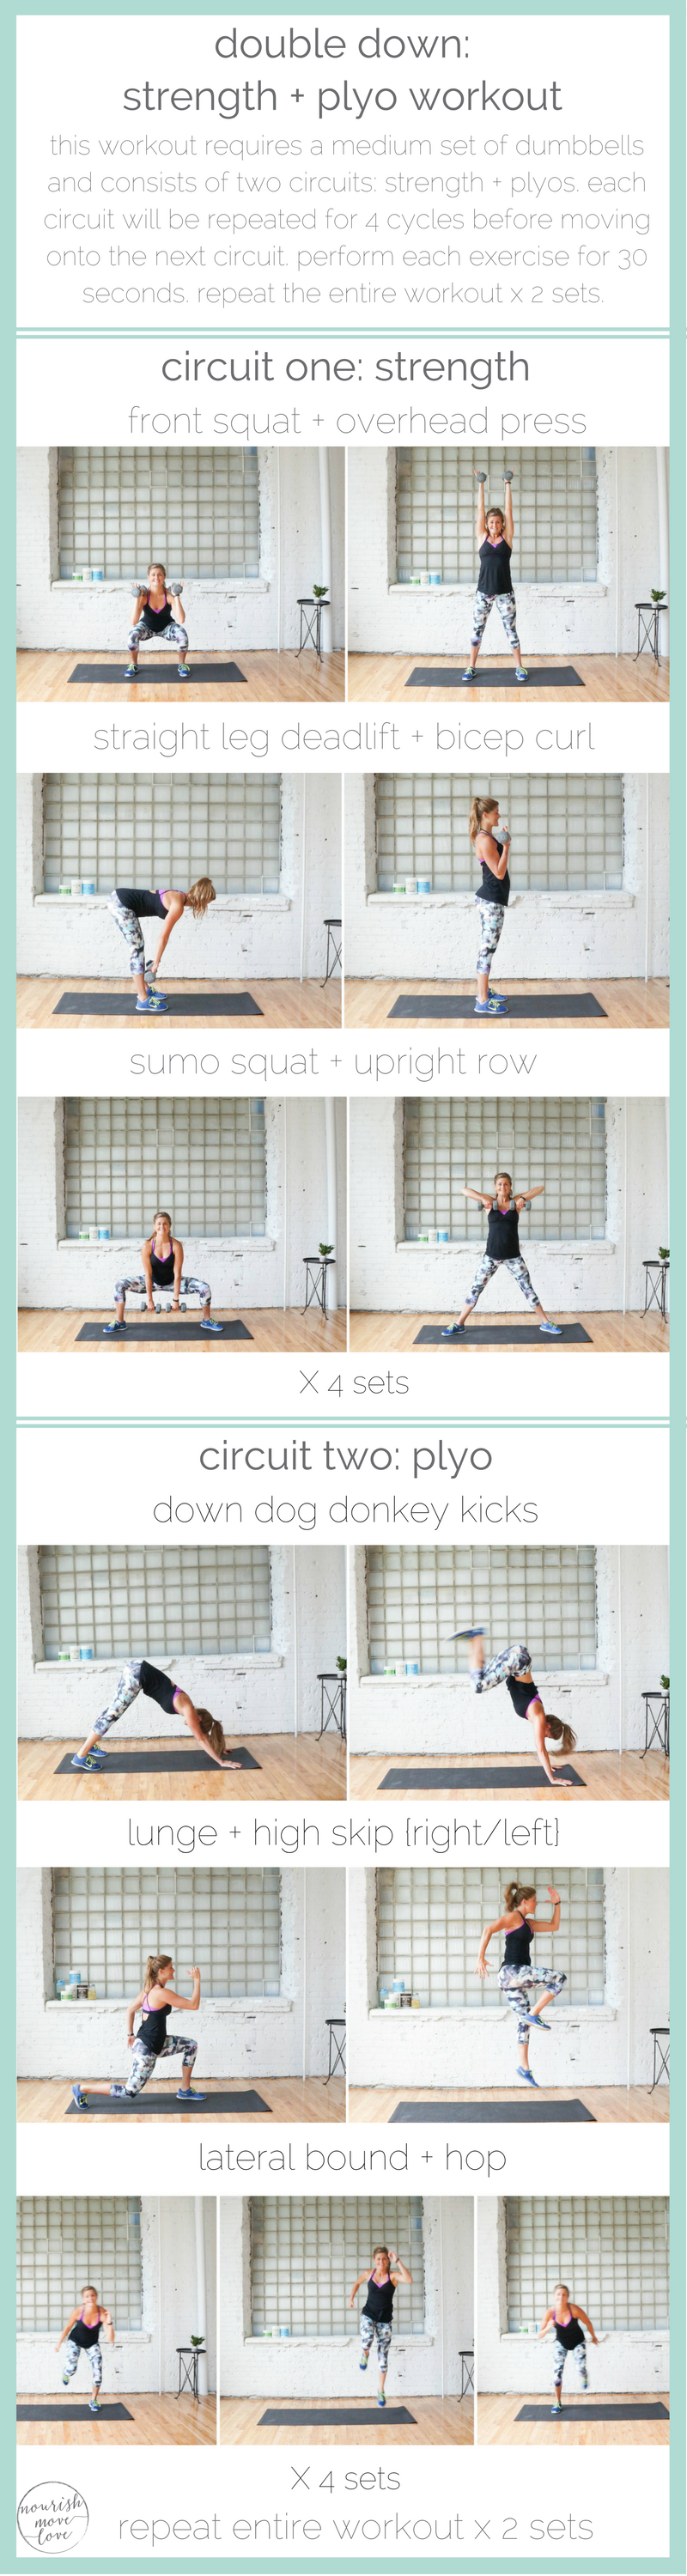 Double Down Strength Plyo Workout At Home Workouts Pinterest Superset Circuit Leg Up On Fitness Two Of The Most Powerful Forms Exercise Together In This Training Plyometric Effective Total Body 30